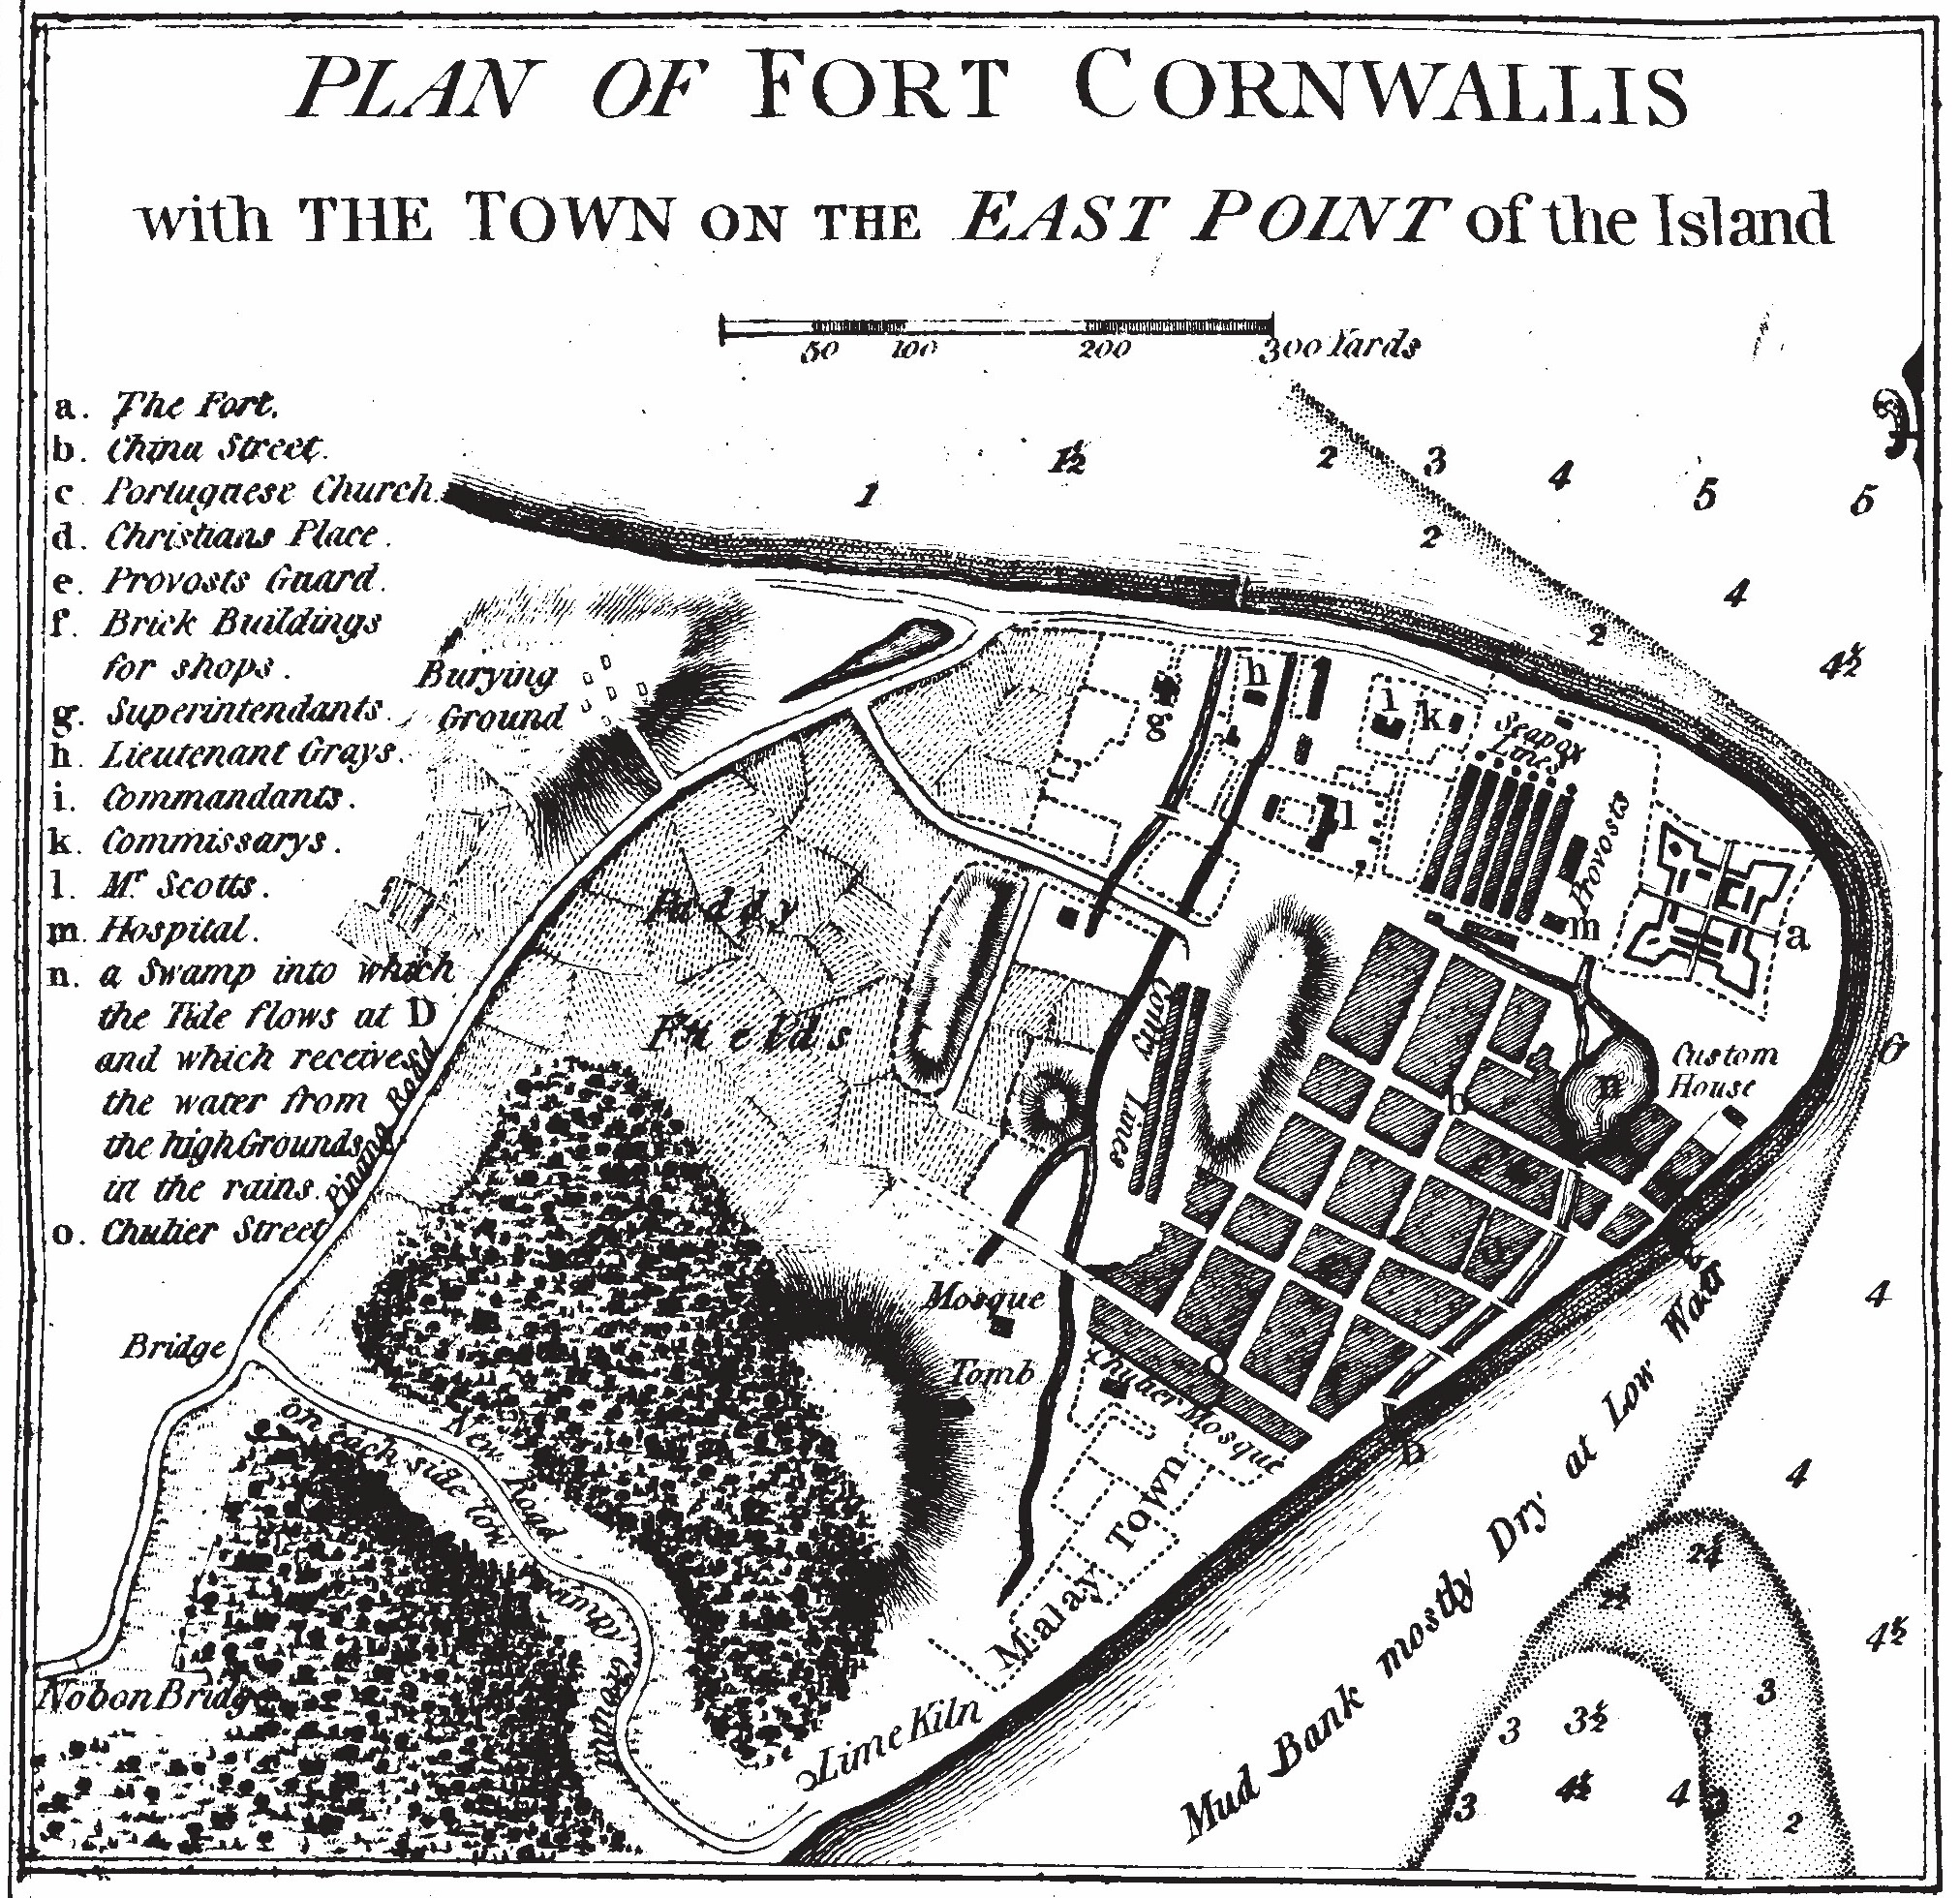 Map of George Town on Penang Island, showing Fort Cornwallis on the northeastern tip and the Malay Town on the south of the town center. Map by Popham, 1799.